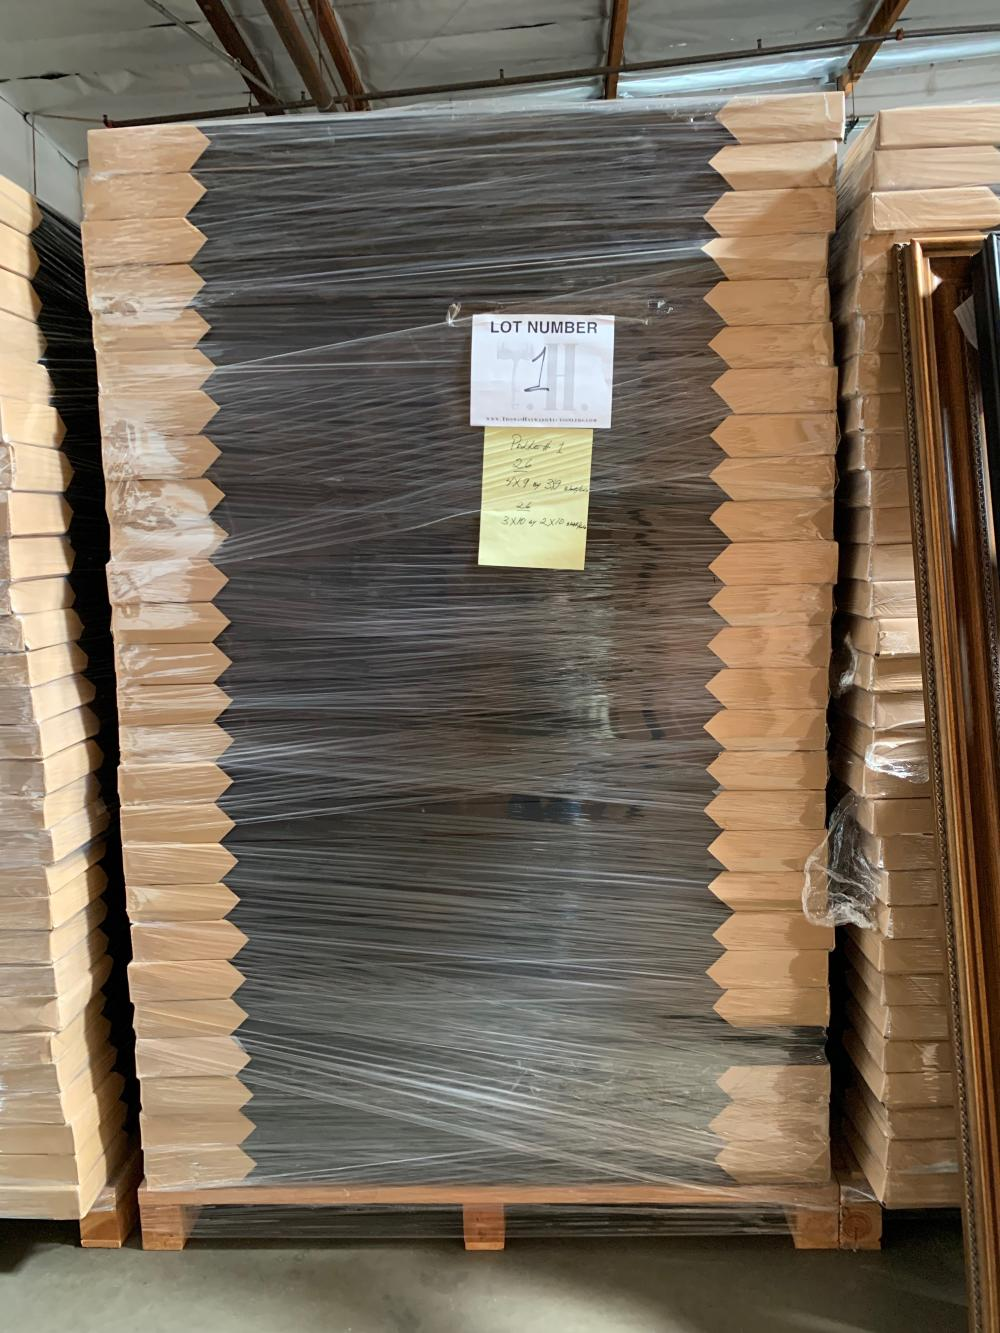 Pallet of Picture Frames 1